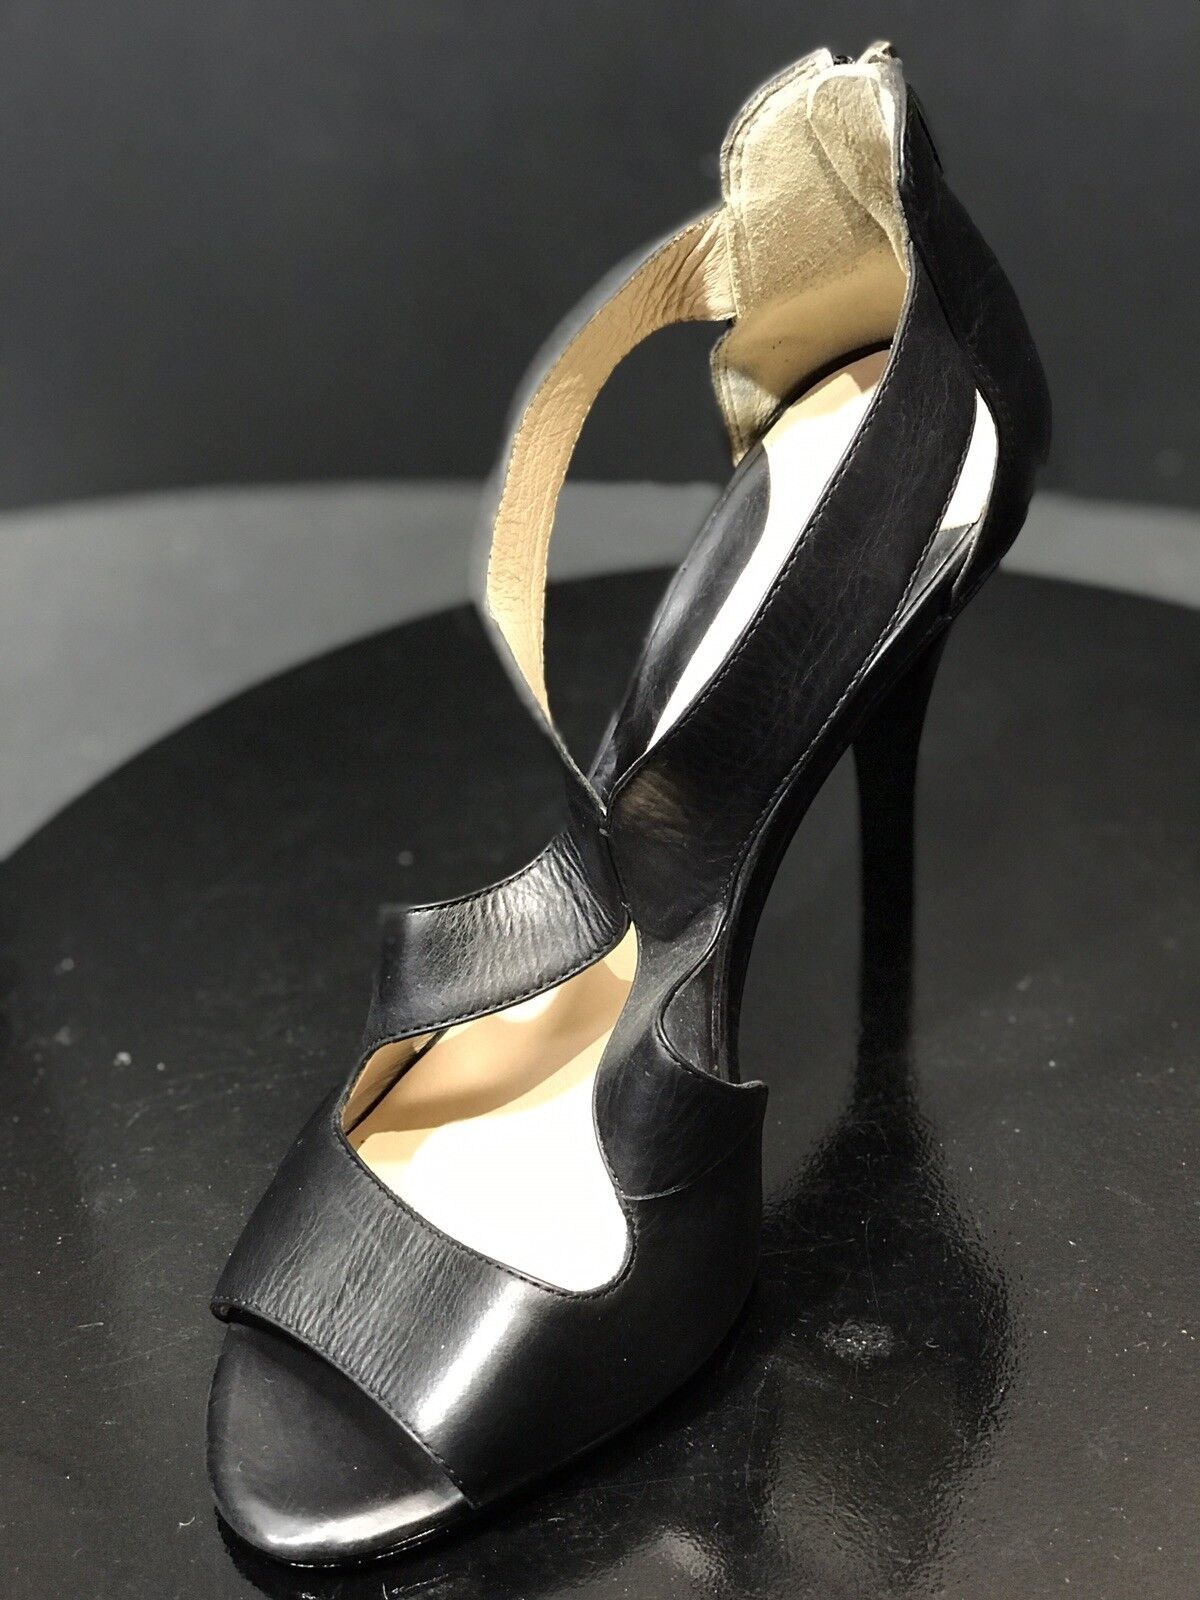 New New New Carolinna Espinosa CEA CHARLESTON Black Leather Sandals  Size 8.5M RTL  275 20dba5